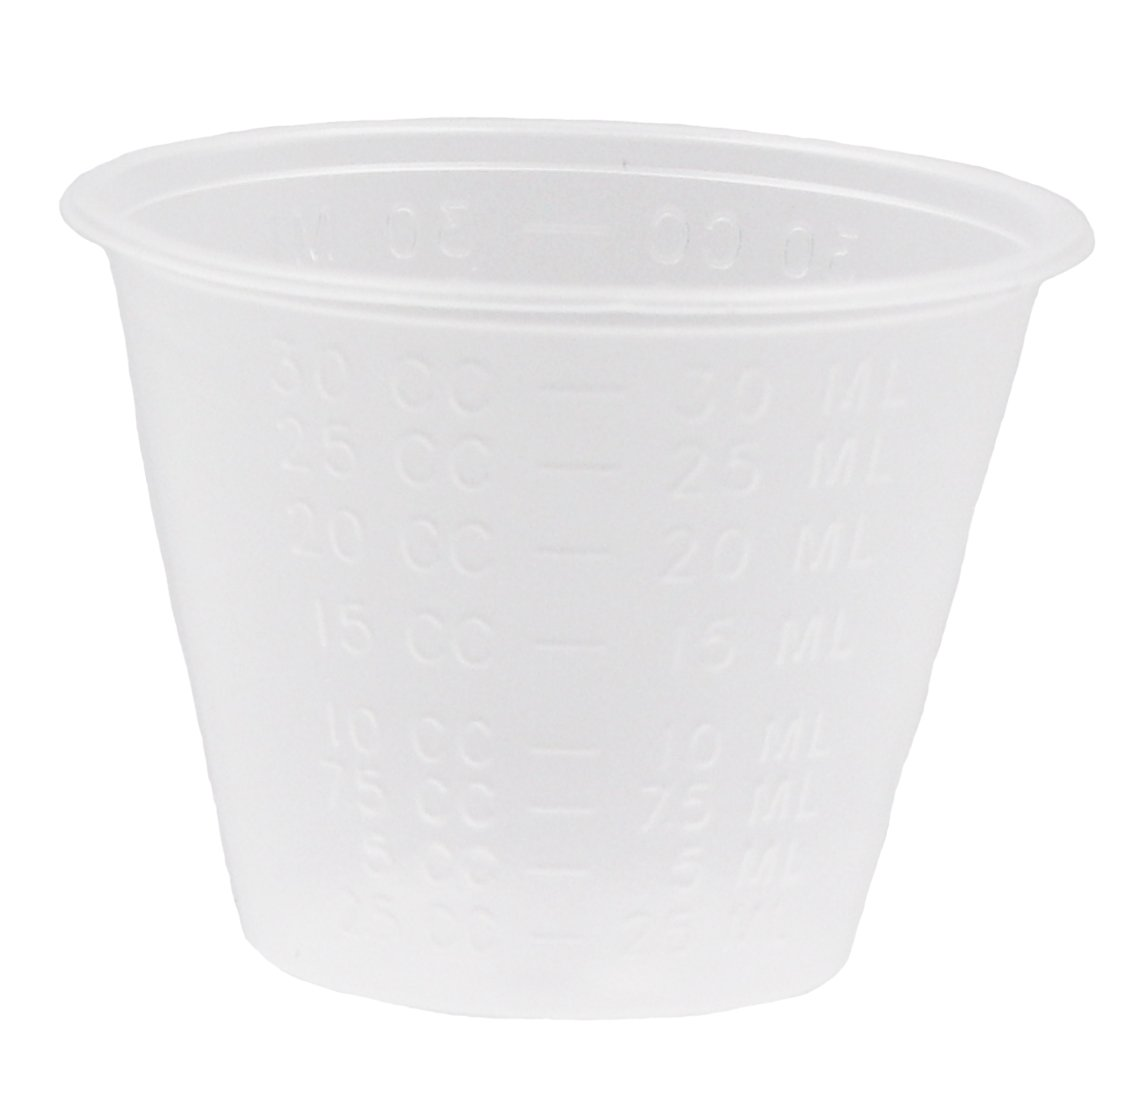 Healthstar Non-Sterile Graduated 1oz Clear Plastic Medicine Cups with Measurement Markings (100 Count)